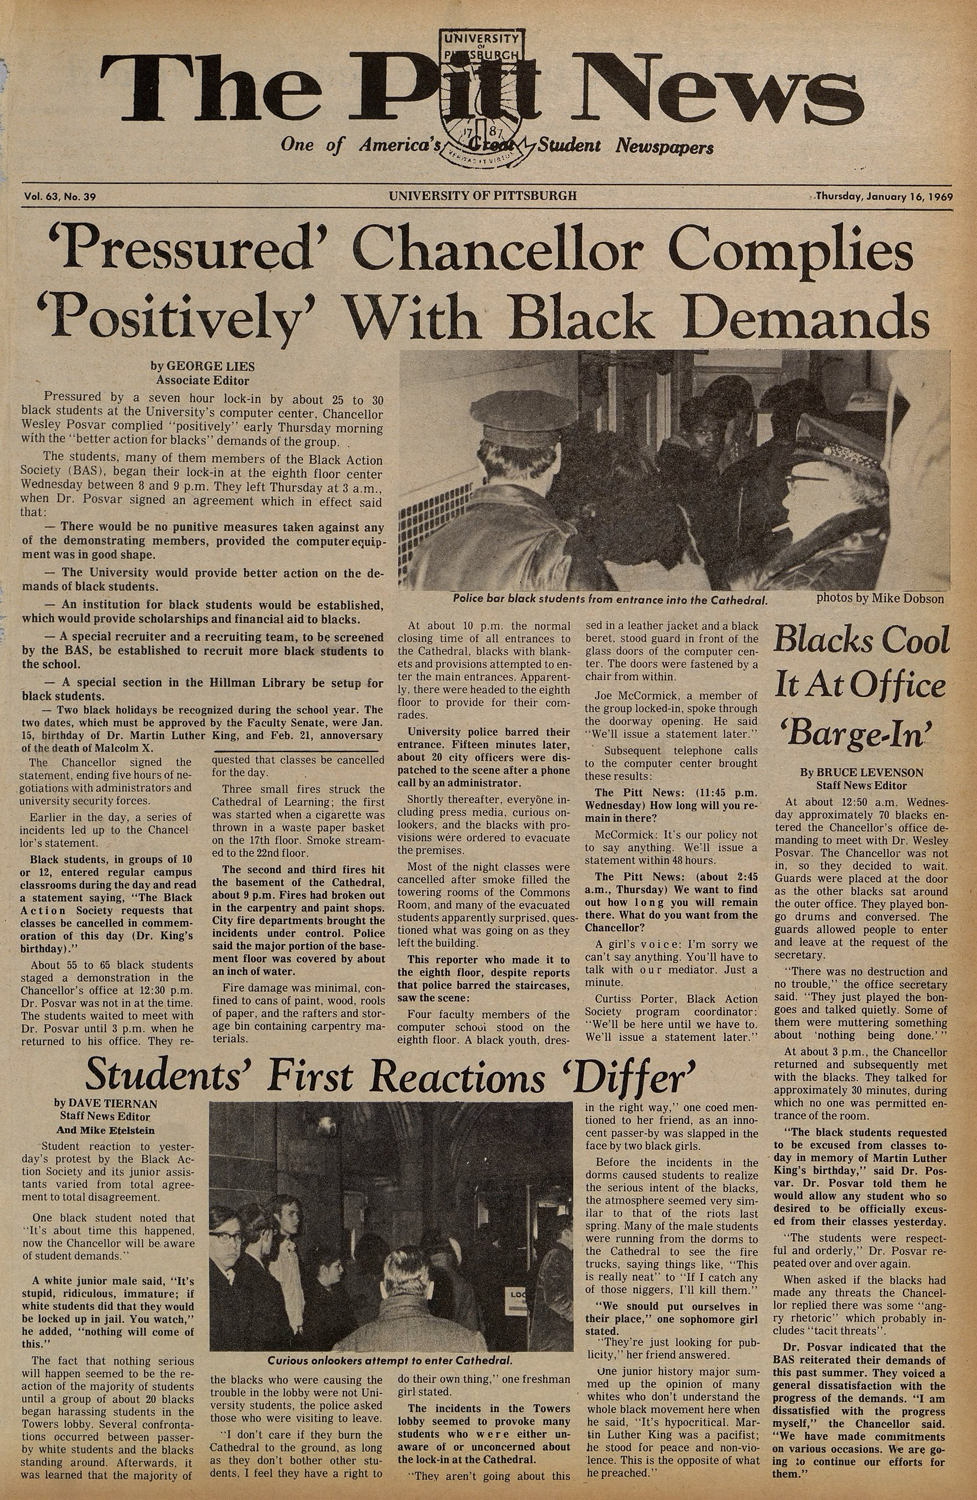 The front page of The Pitt News on Jan. 16, 1969, details an agreement between Black Action Society and the University for improved treatment of students of color. The photo (top) shows police preventing black students from entering the Cathedral.